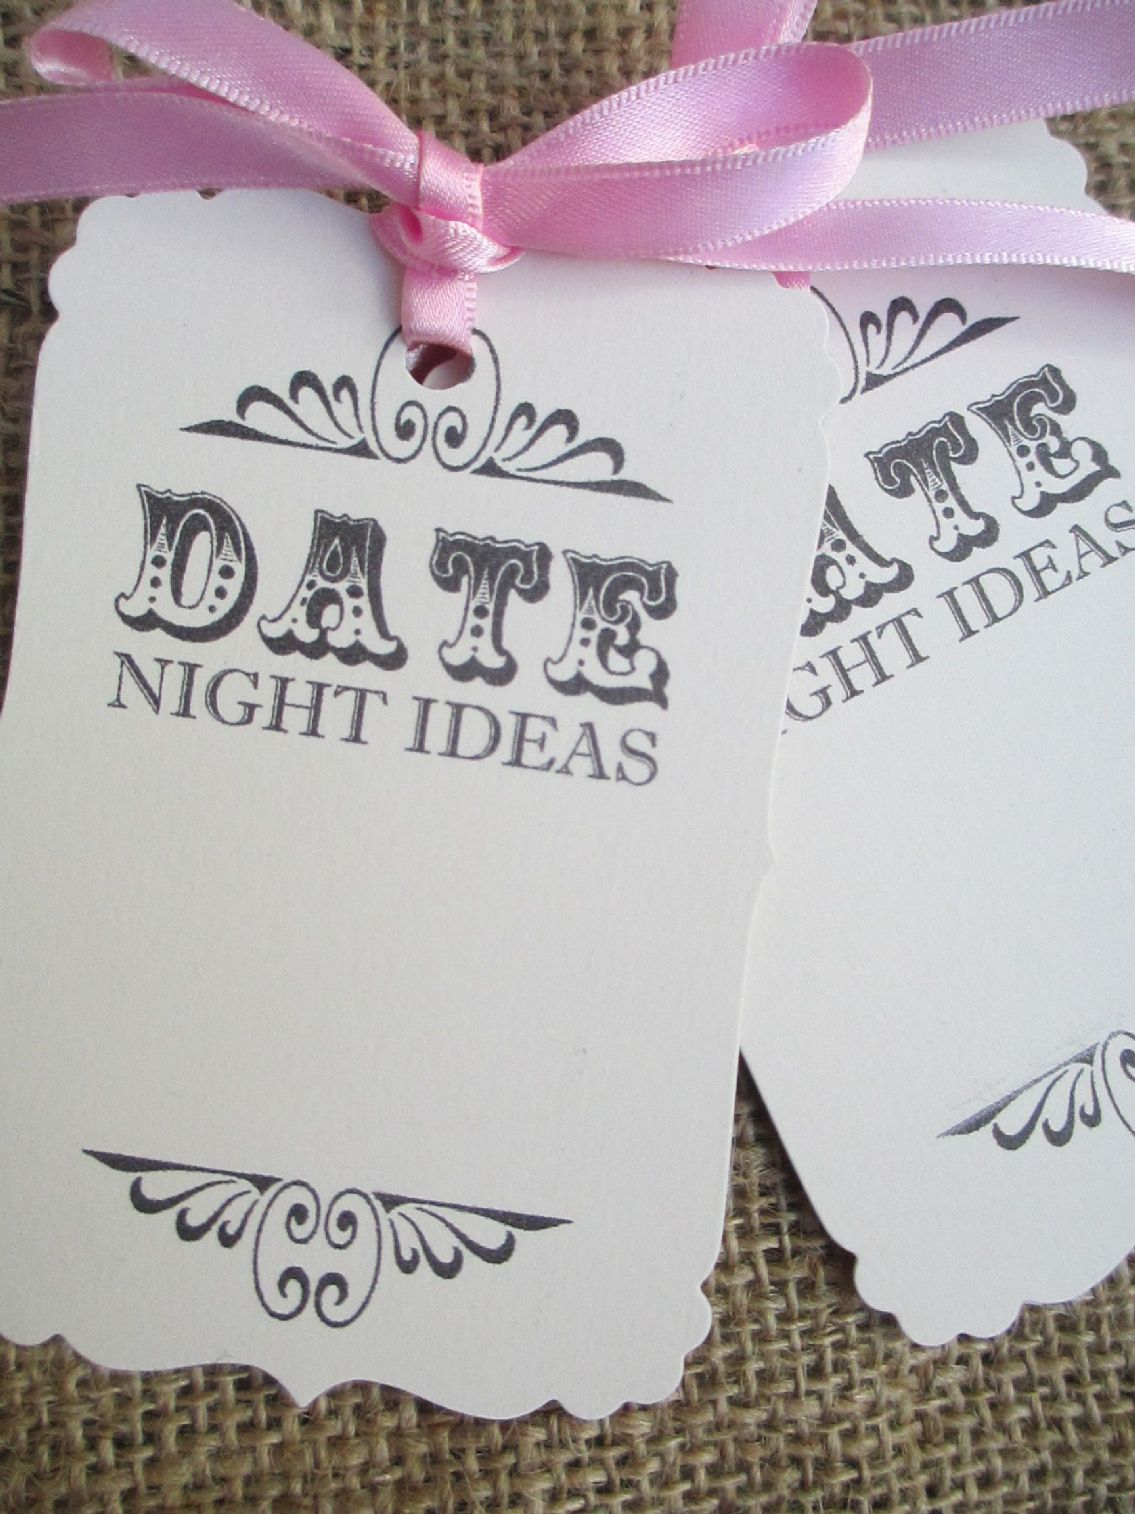 25 Date Night Ideas Ivory Luggage Tags